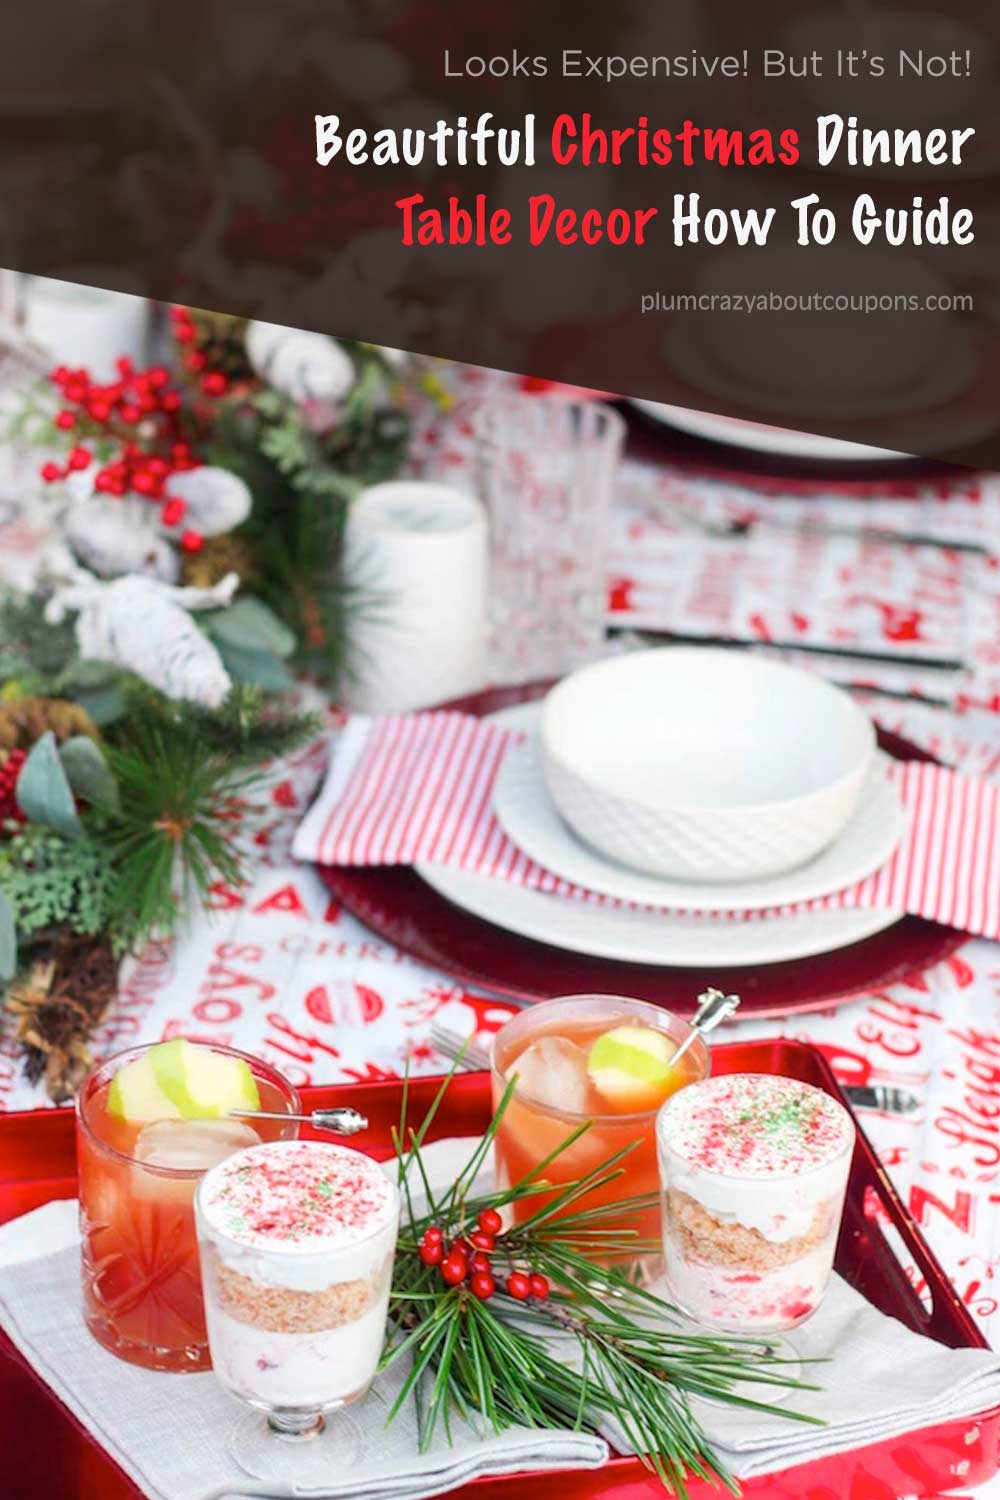 Christmas table decor in red and white